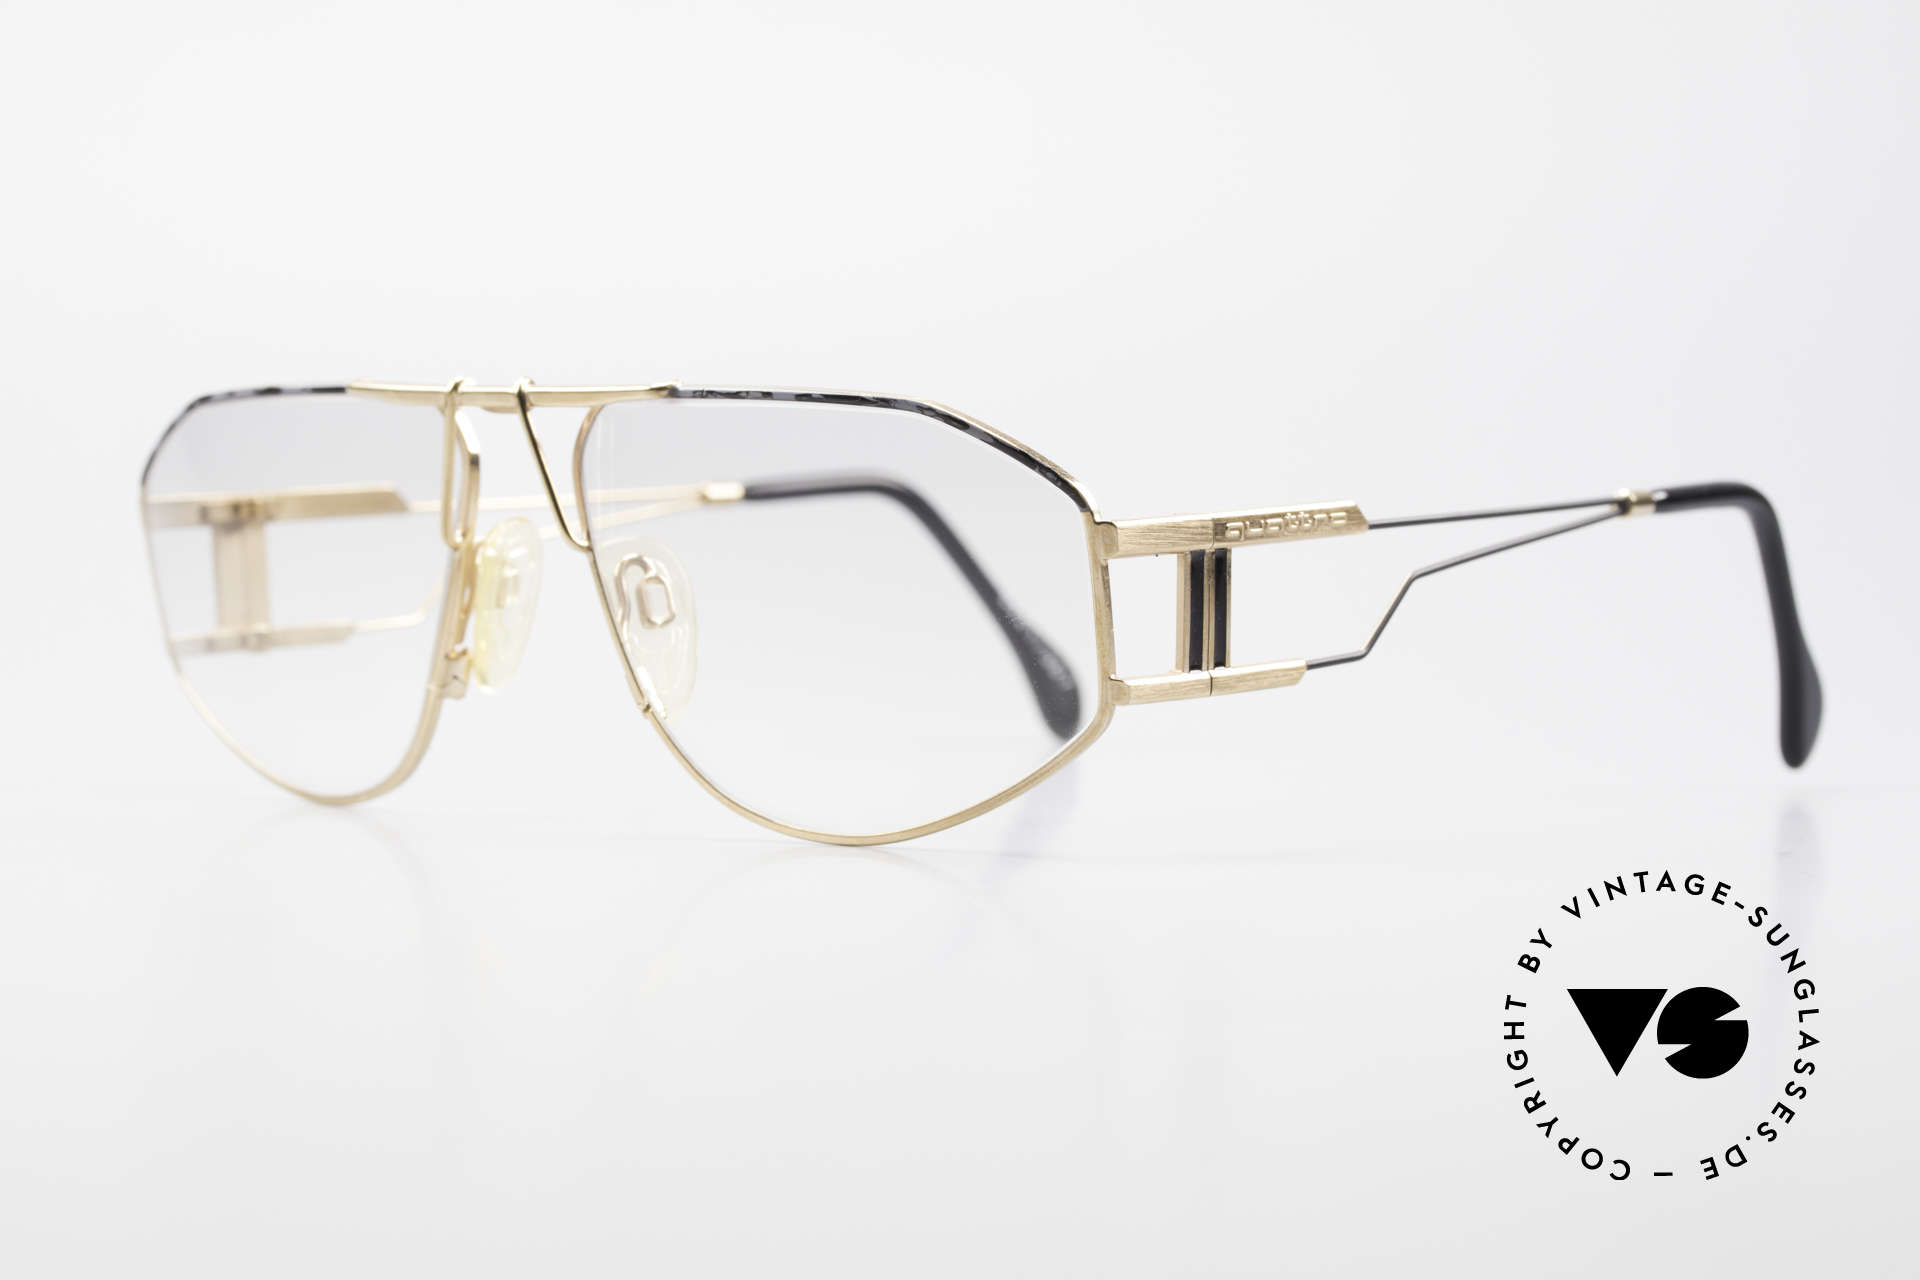 Quattro 0421 Extraordinary Vintage Frame, highest quality demanding (focused on every detail), Made for Men